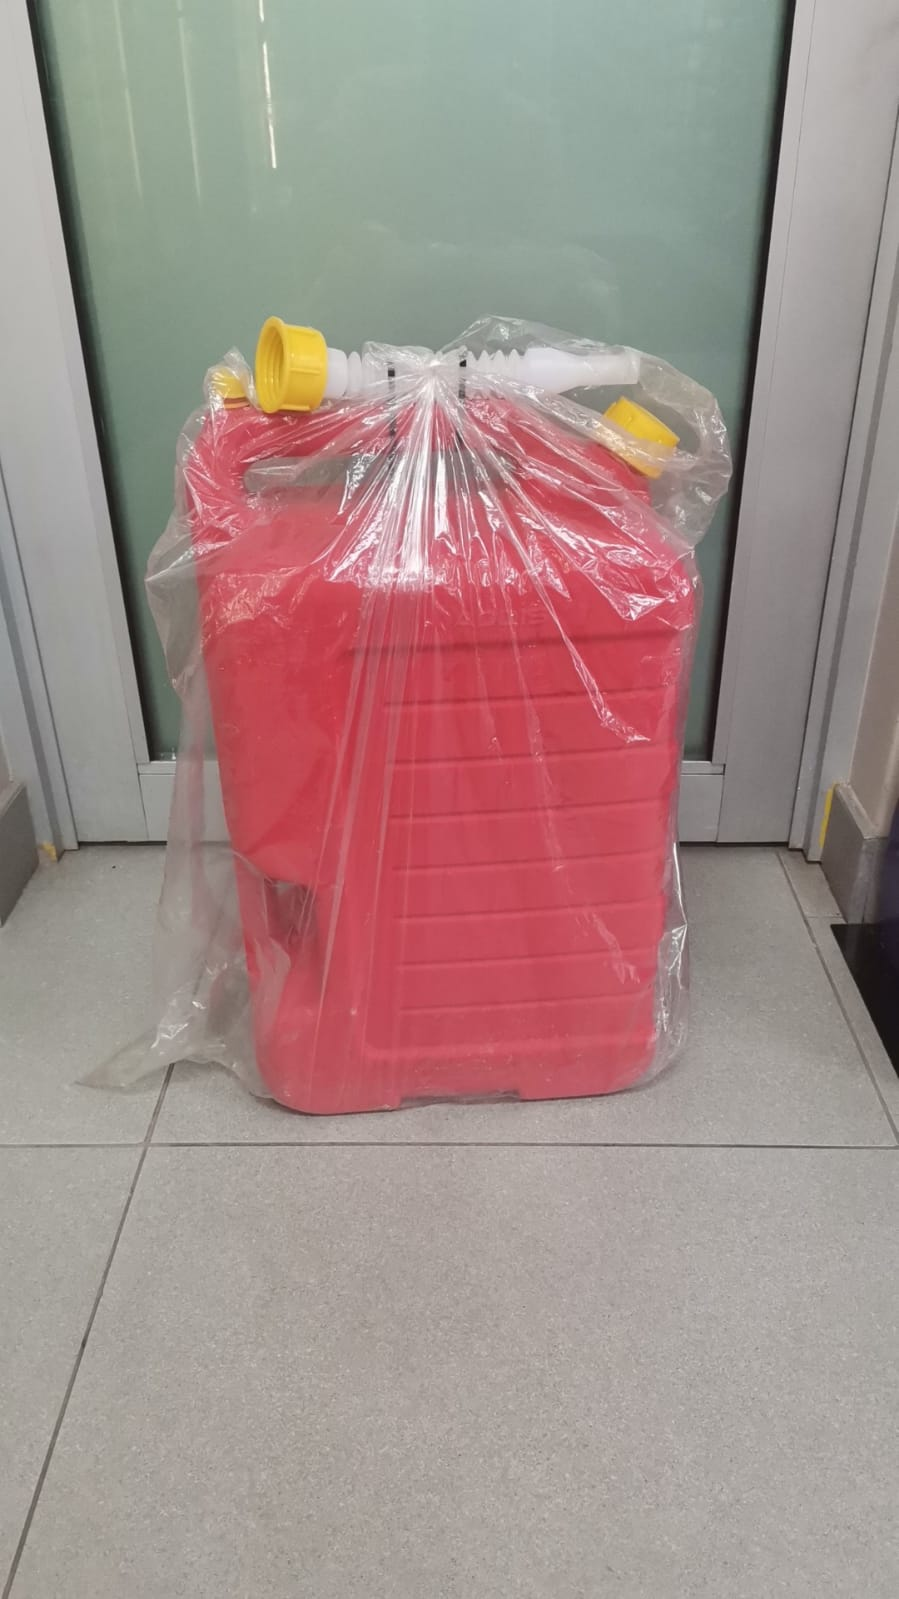 New Jerry cans for sale